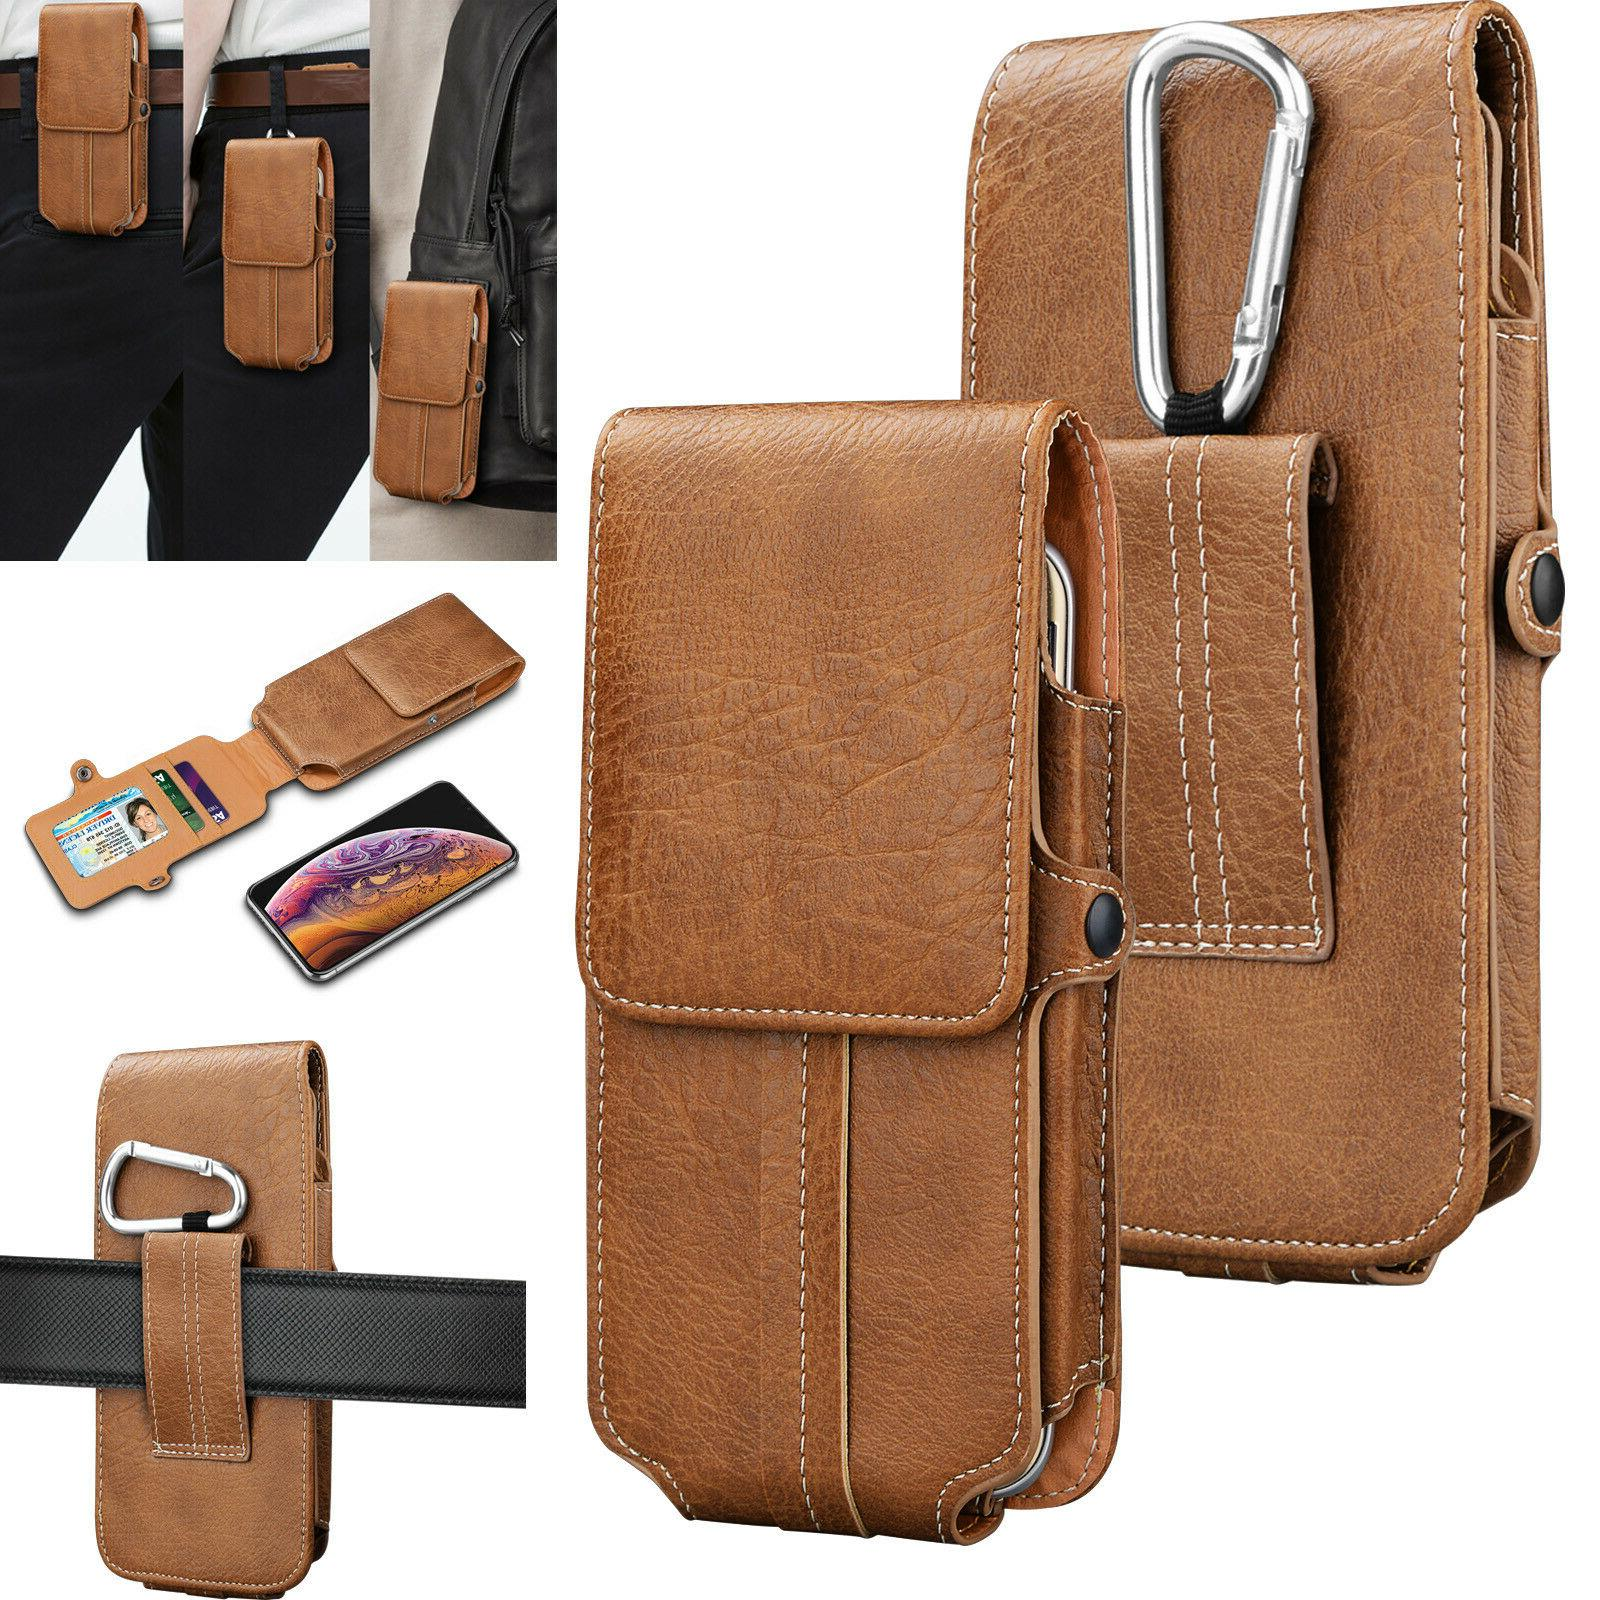 Luxury Pouch LG Cell Phone Clip